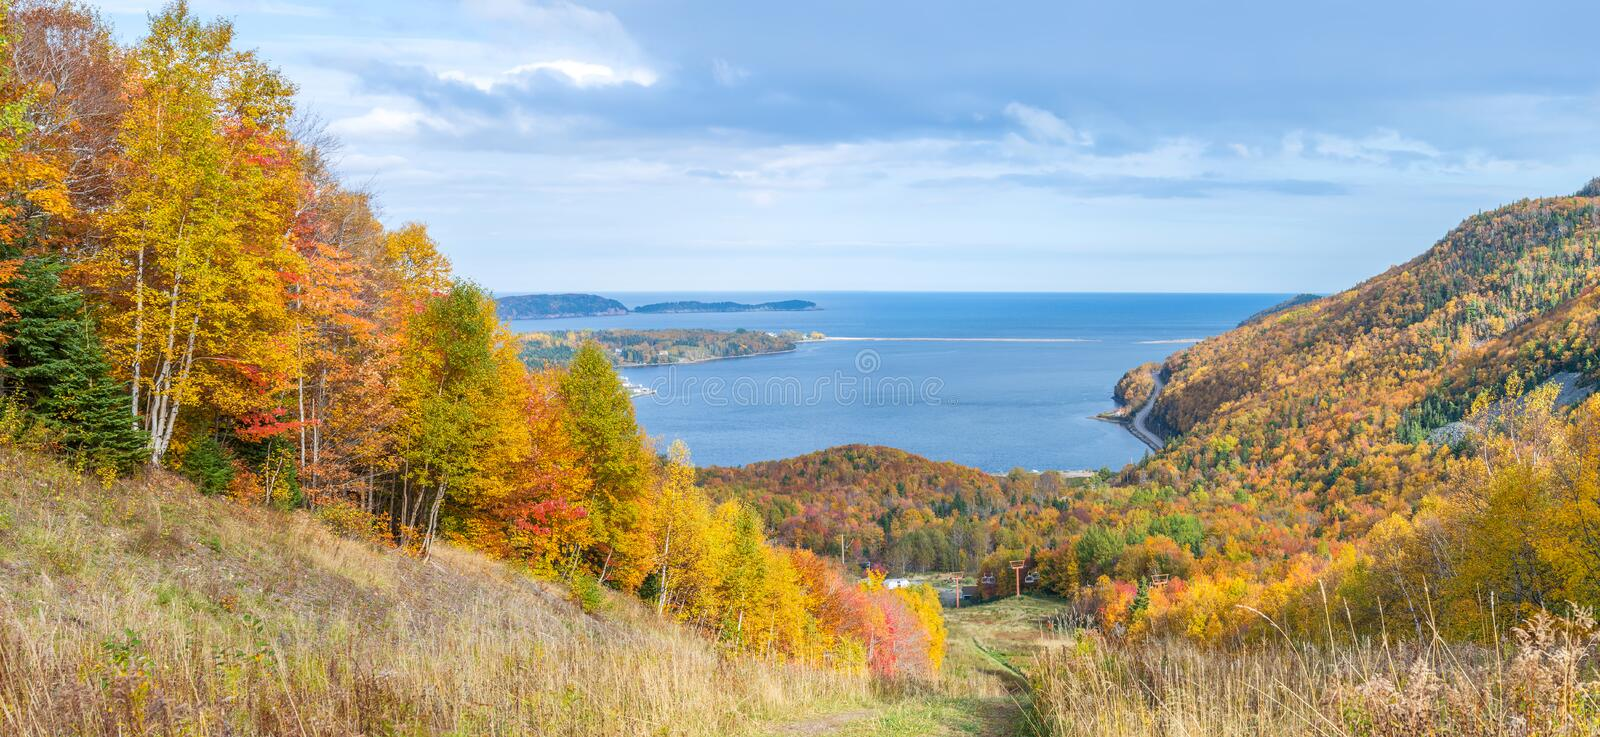 Panoramic view of Cabot Trail in the fall. (Cape Breton, Nova Scotia, Canada royalty free stock image